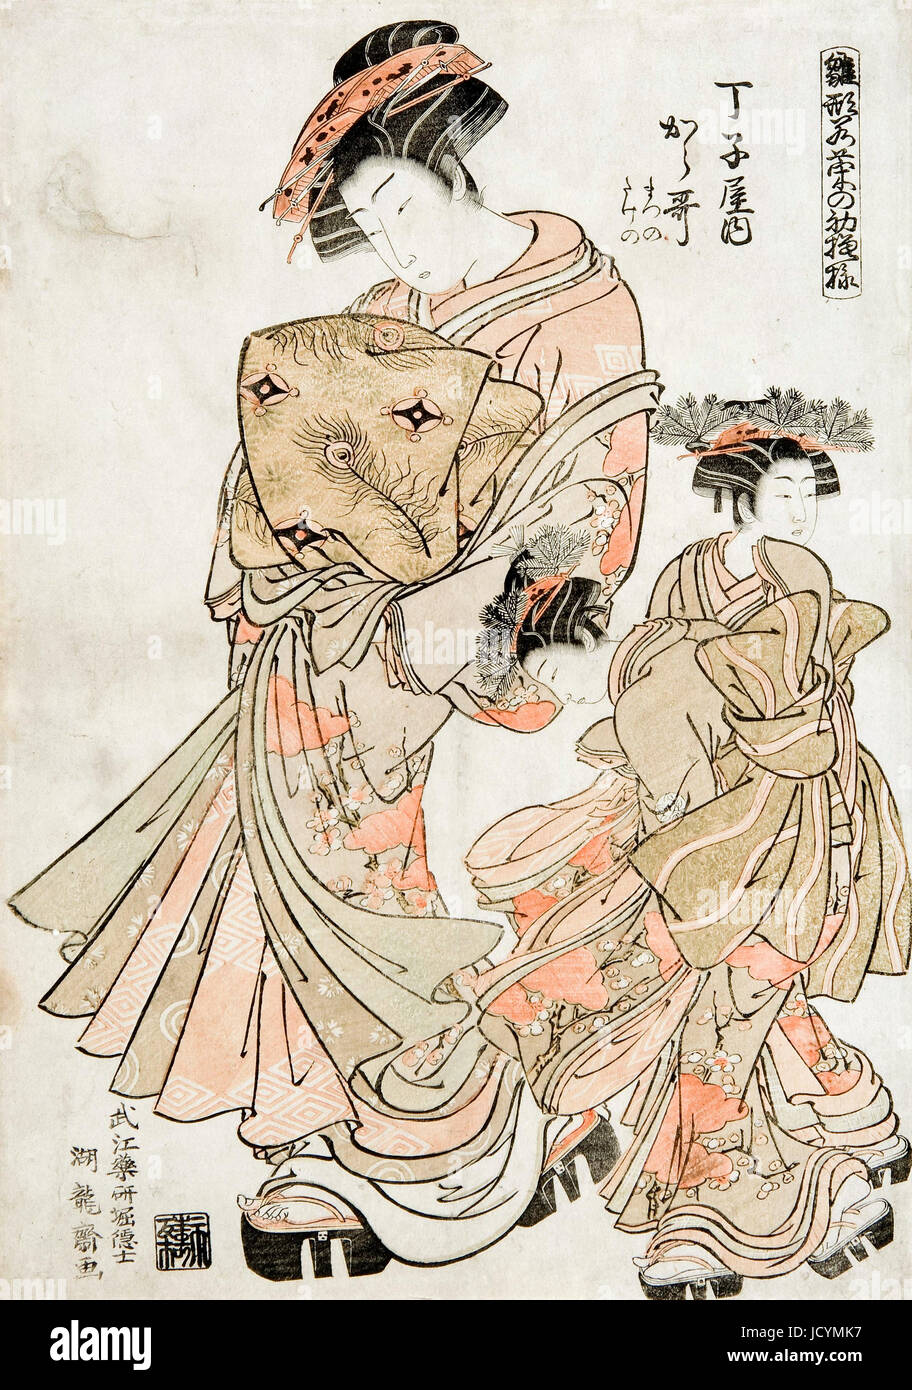 Isoda Koryusai, New Designs as Fresh as Young Leaves 1778 Woodcut. National Museums of World Culture, Goteborg, - Stock Image